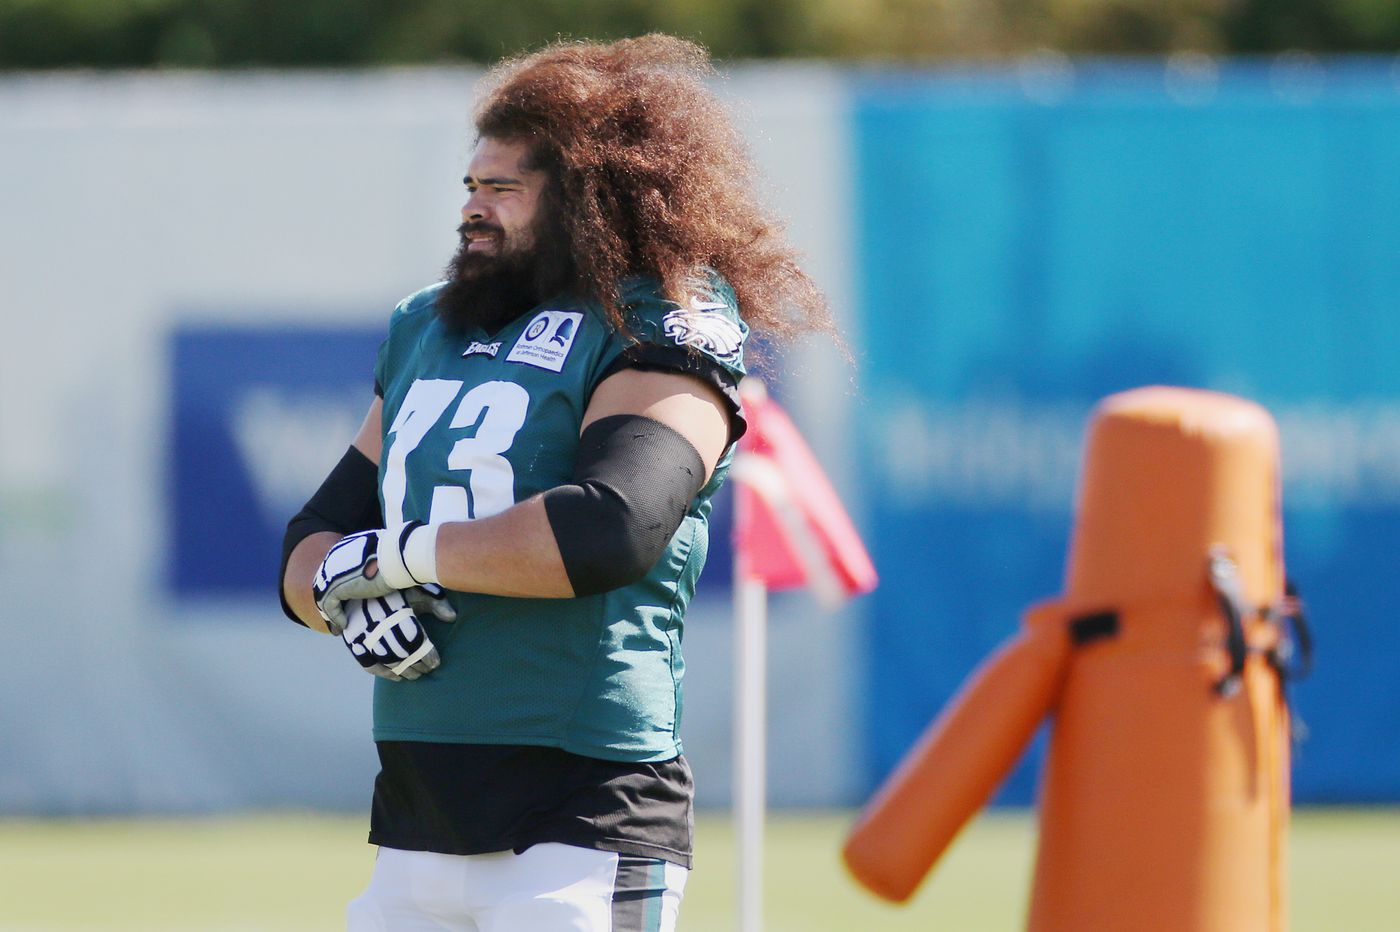 Knee injury sidelines Isaac Seumalo for a while, Eagles resurrect Matt Pryor as his left-guard replacement